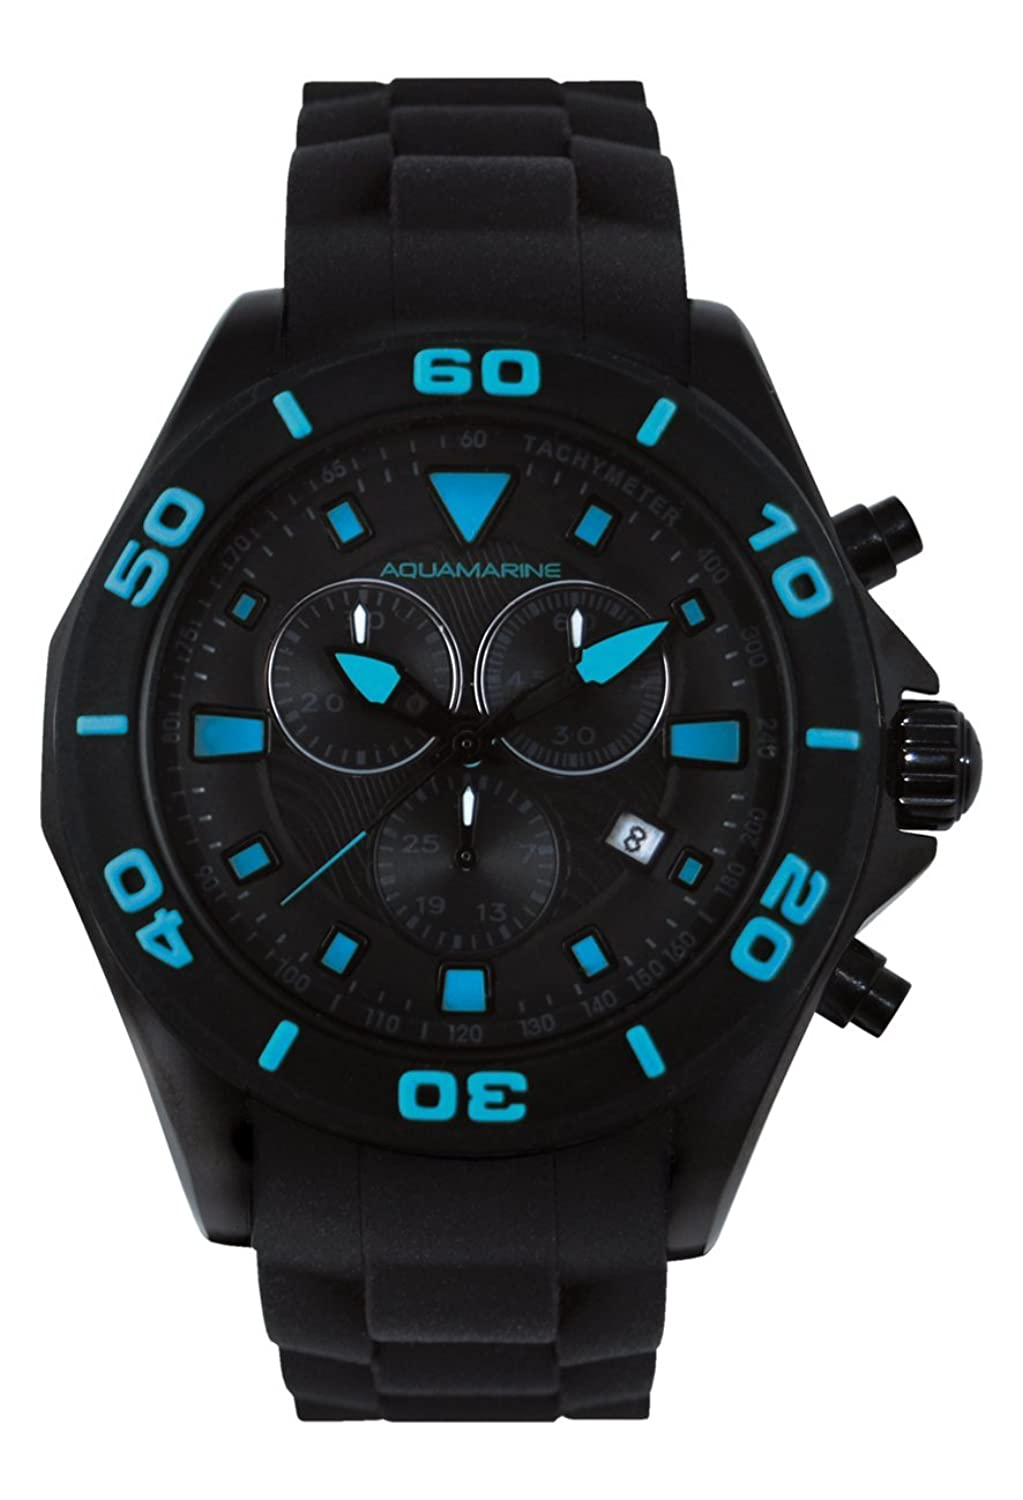 Aquamarine Herrenuhr Chrono schwarz-blau – Kollektion Summer 2016